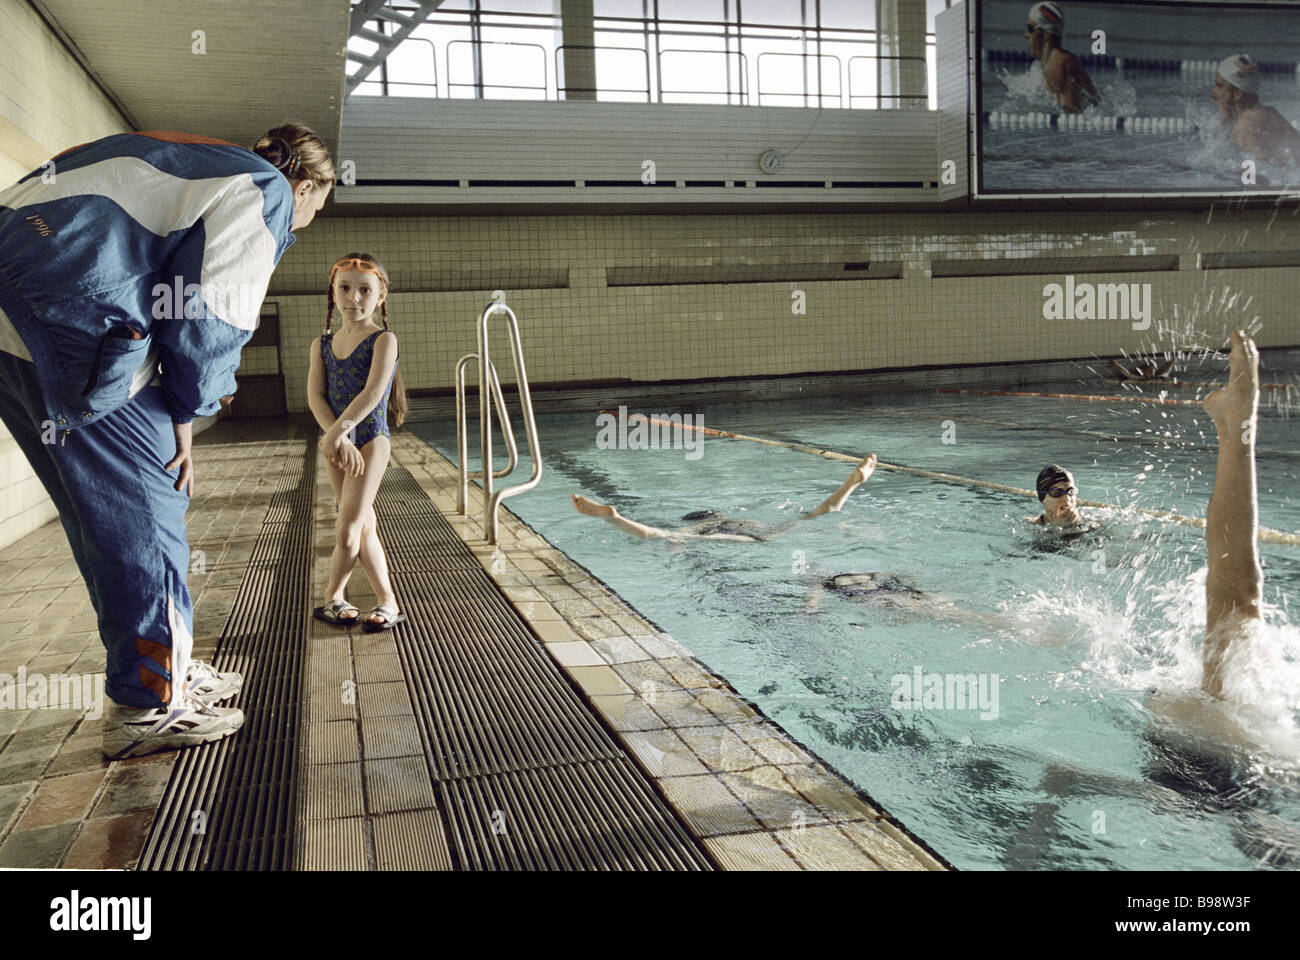 Synchronized swimming school training session The trainer left - Stock Image